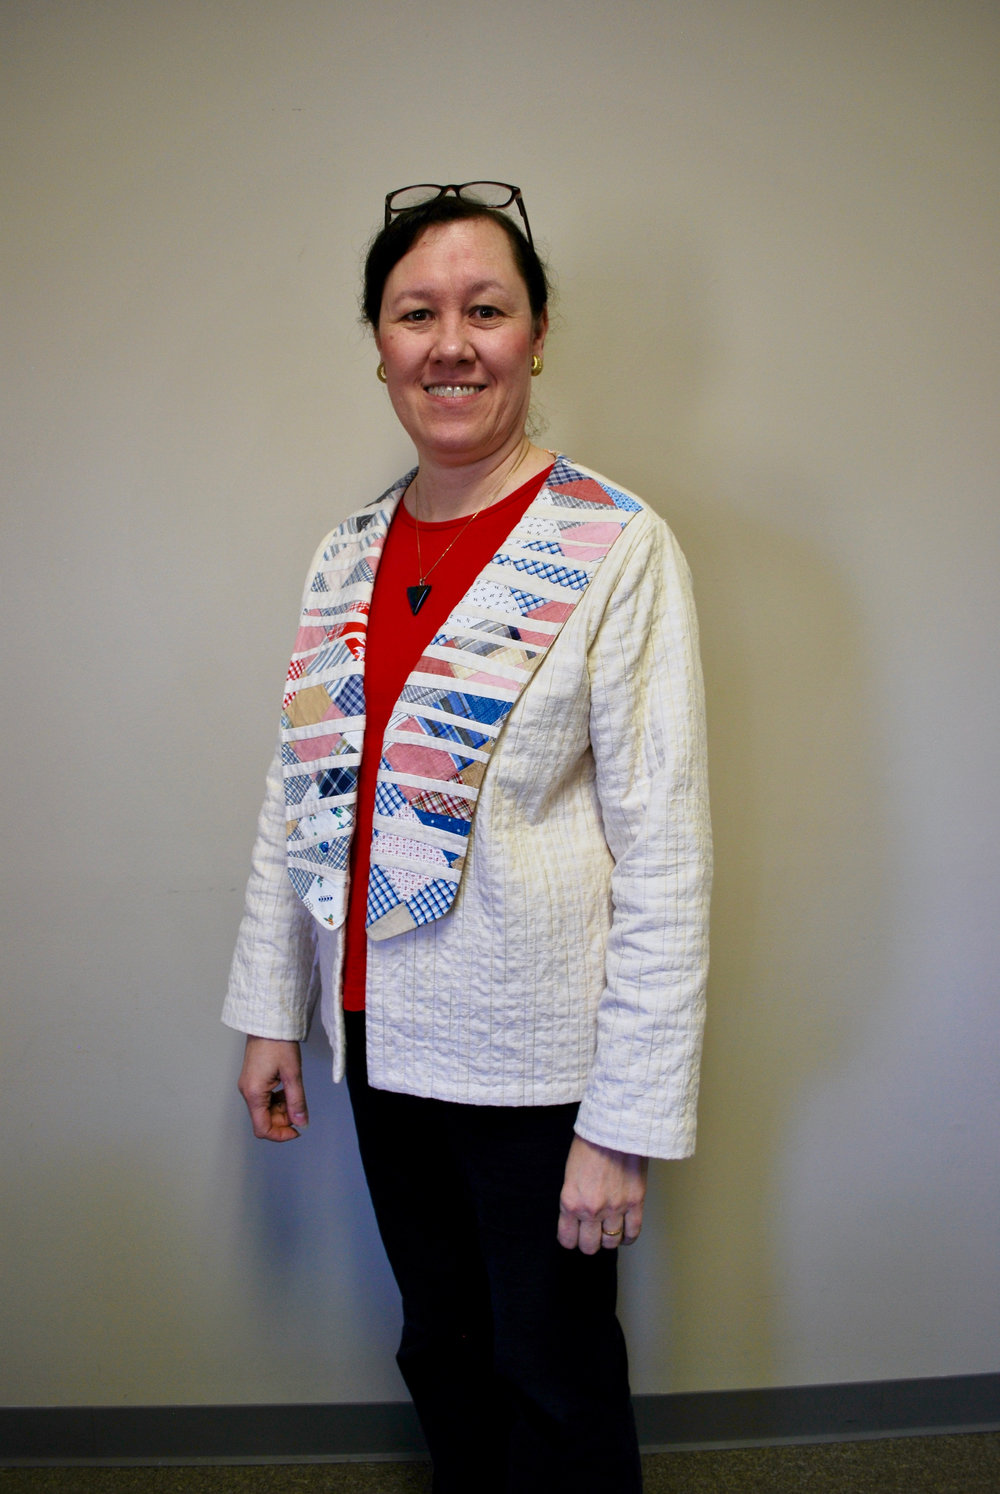 Veronica cut up old quilt blocks and incorporated them into a jacket